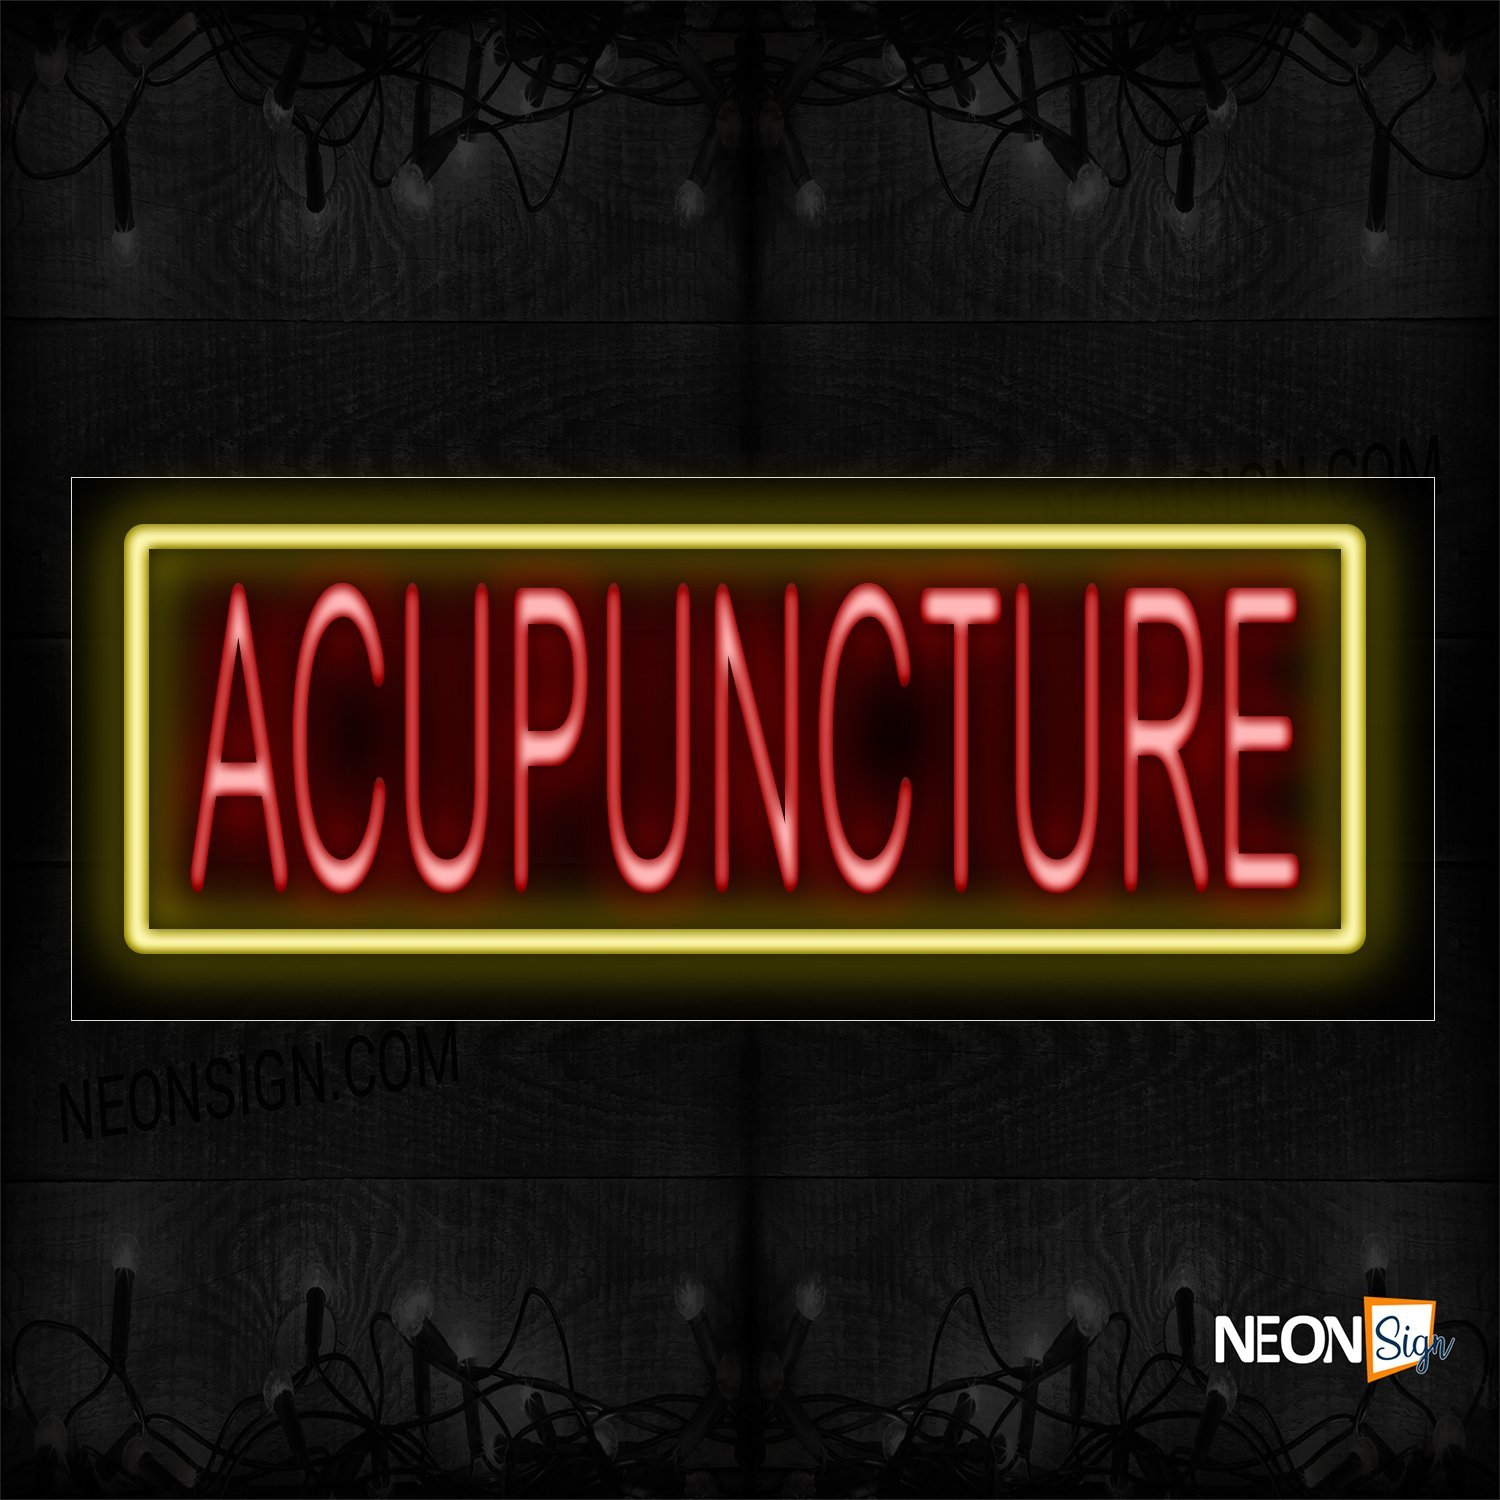 Image of 10504 Acupuncture In Red With Yellow Border Neon Sign_13x32 Black Backing